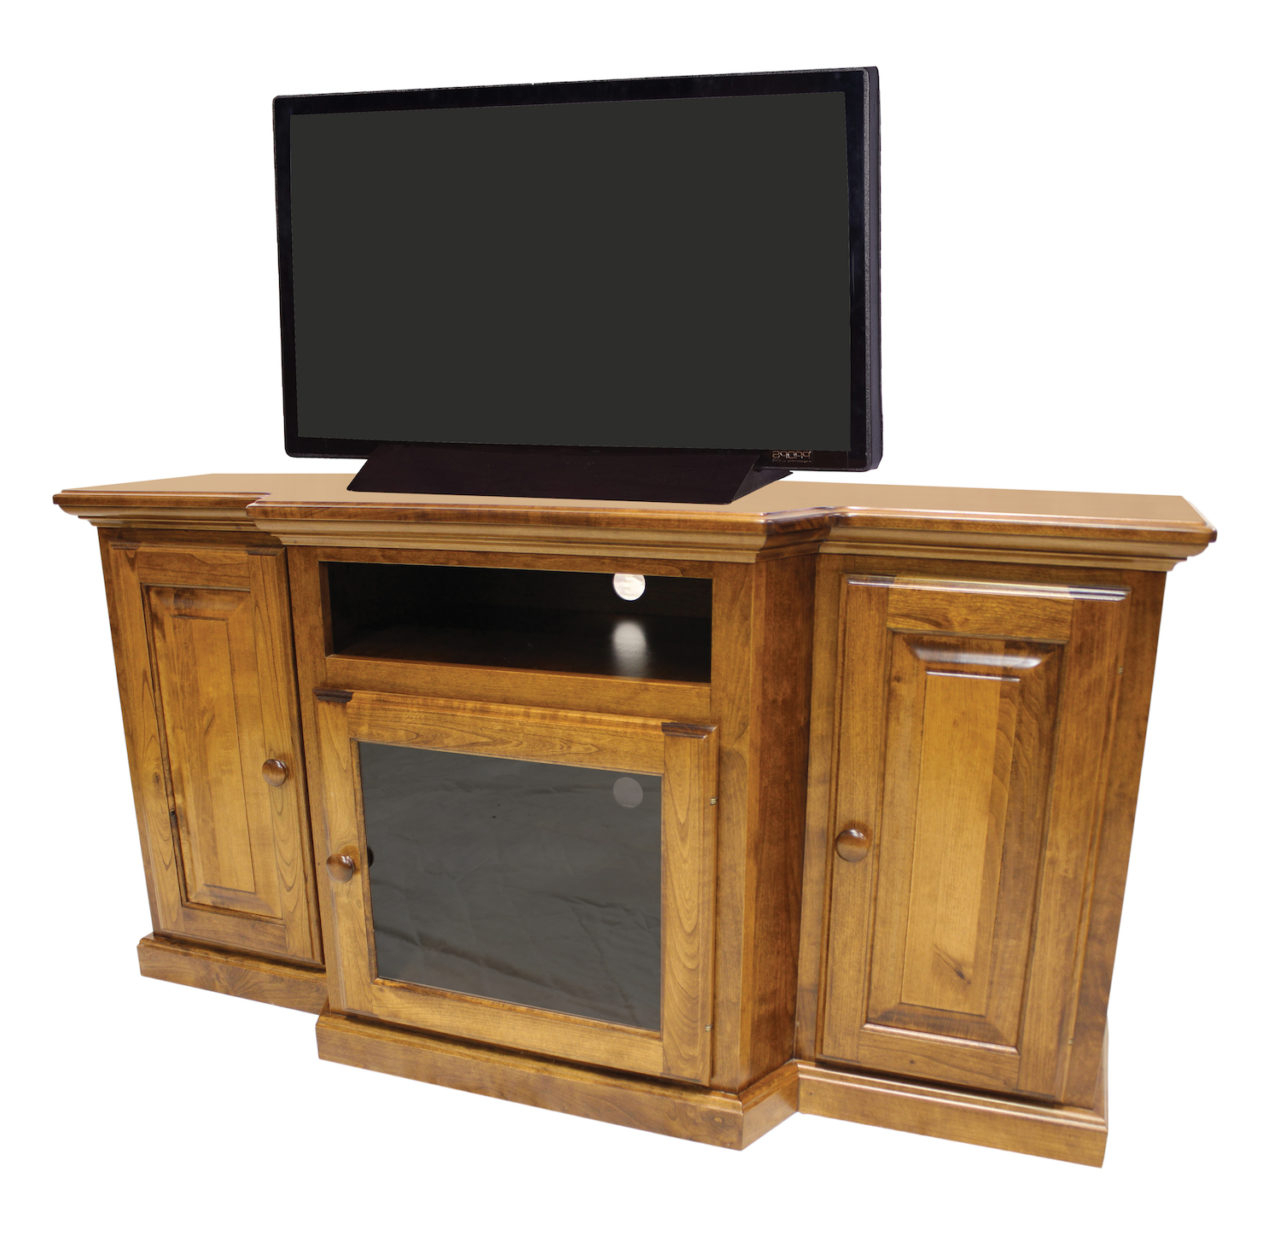 Famous 959 161 Kirtley Slimline Tv Stand Cp – Gish's Amish Legacies Inside Slim Line Tv Stands (Gallery 12 of 20)